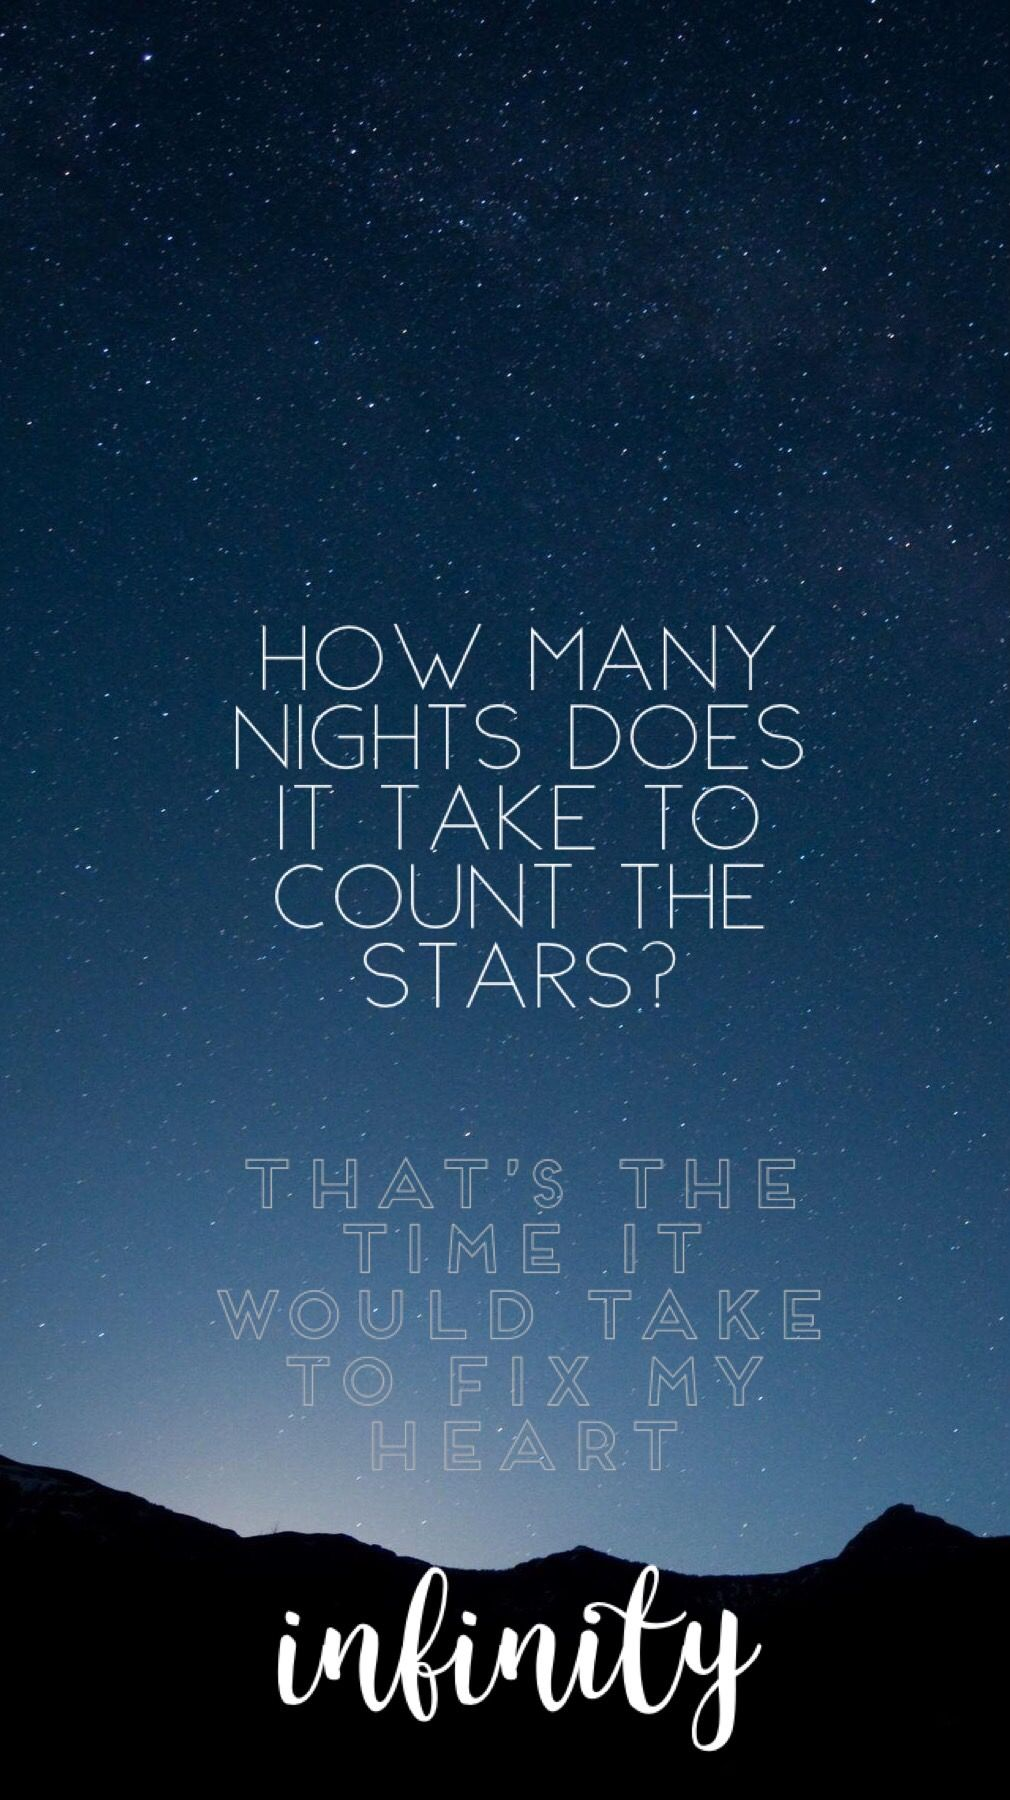 Infinity One Direction Wallpaper One Direction Quotes One Direction Wallpaper One Direction Lyrics